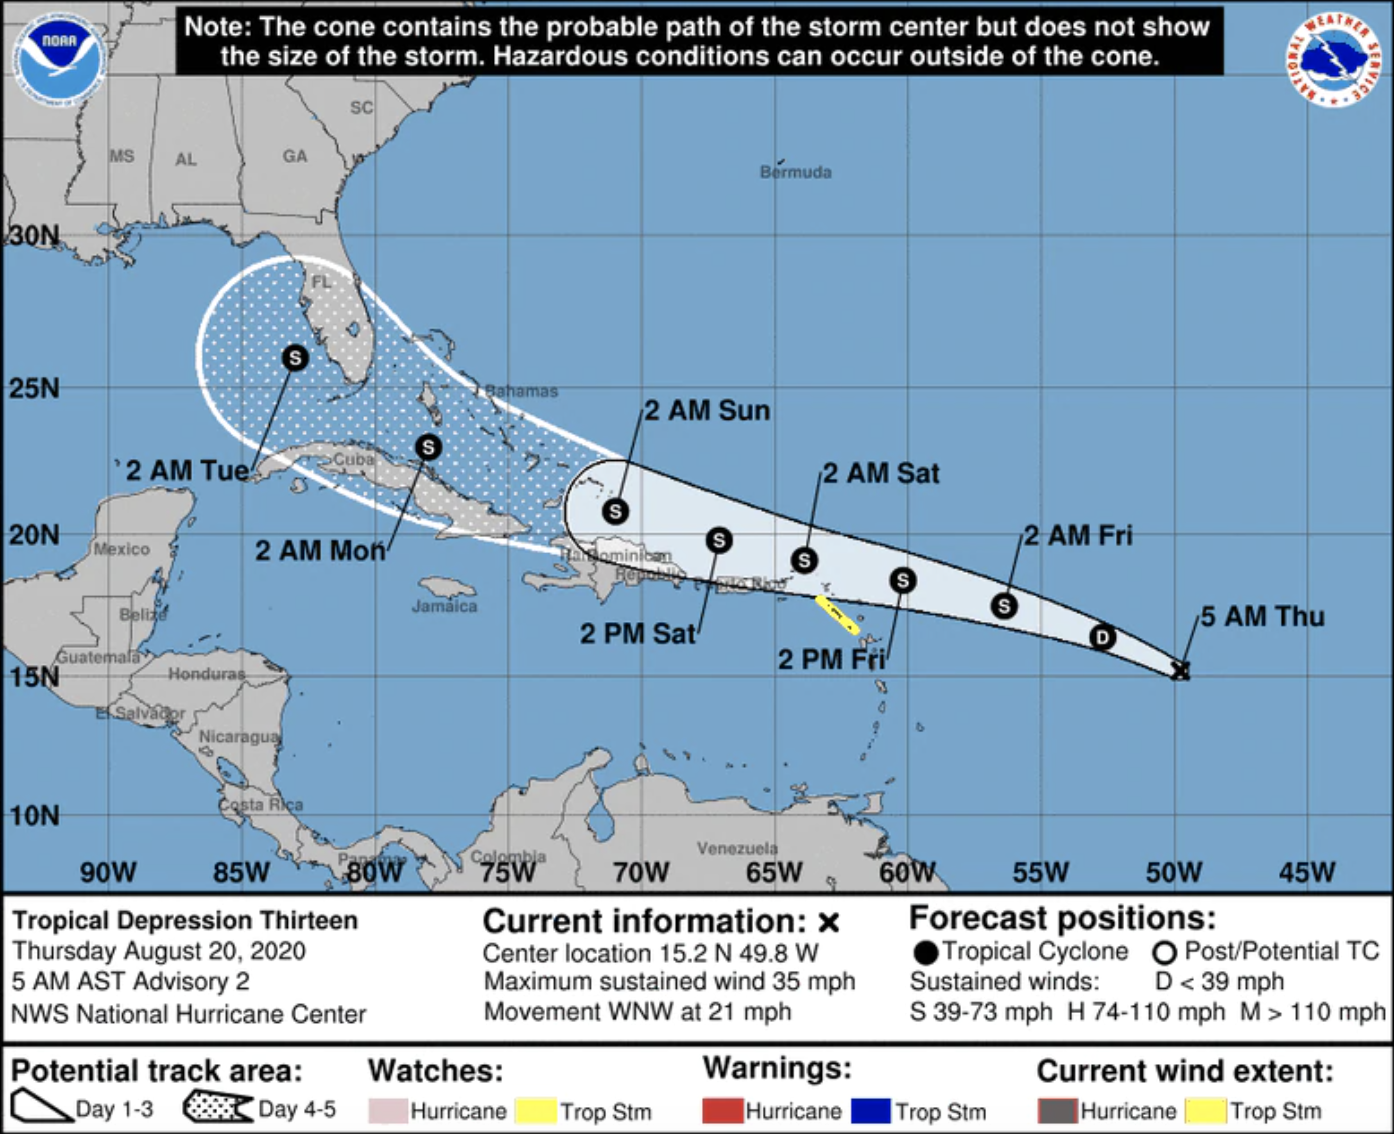 Tropical Depression 13 forms with Florida in its path